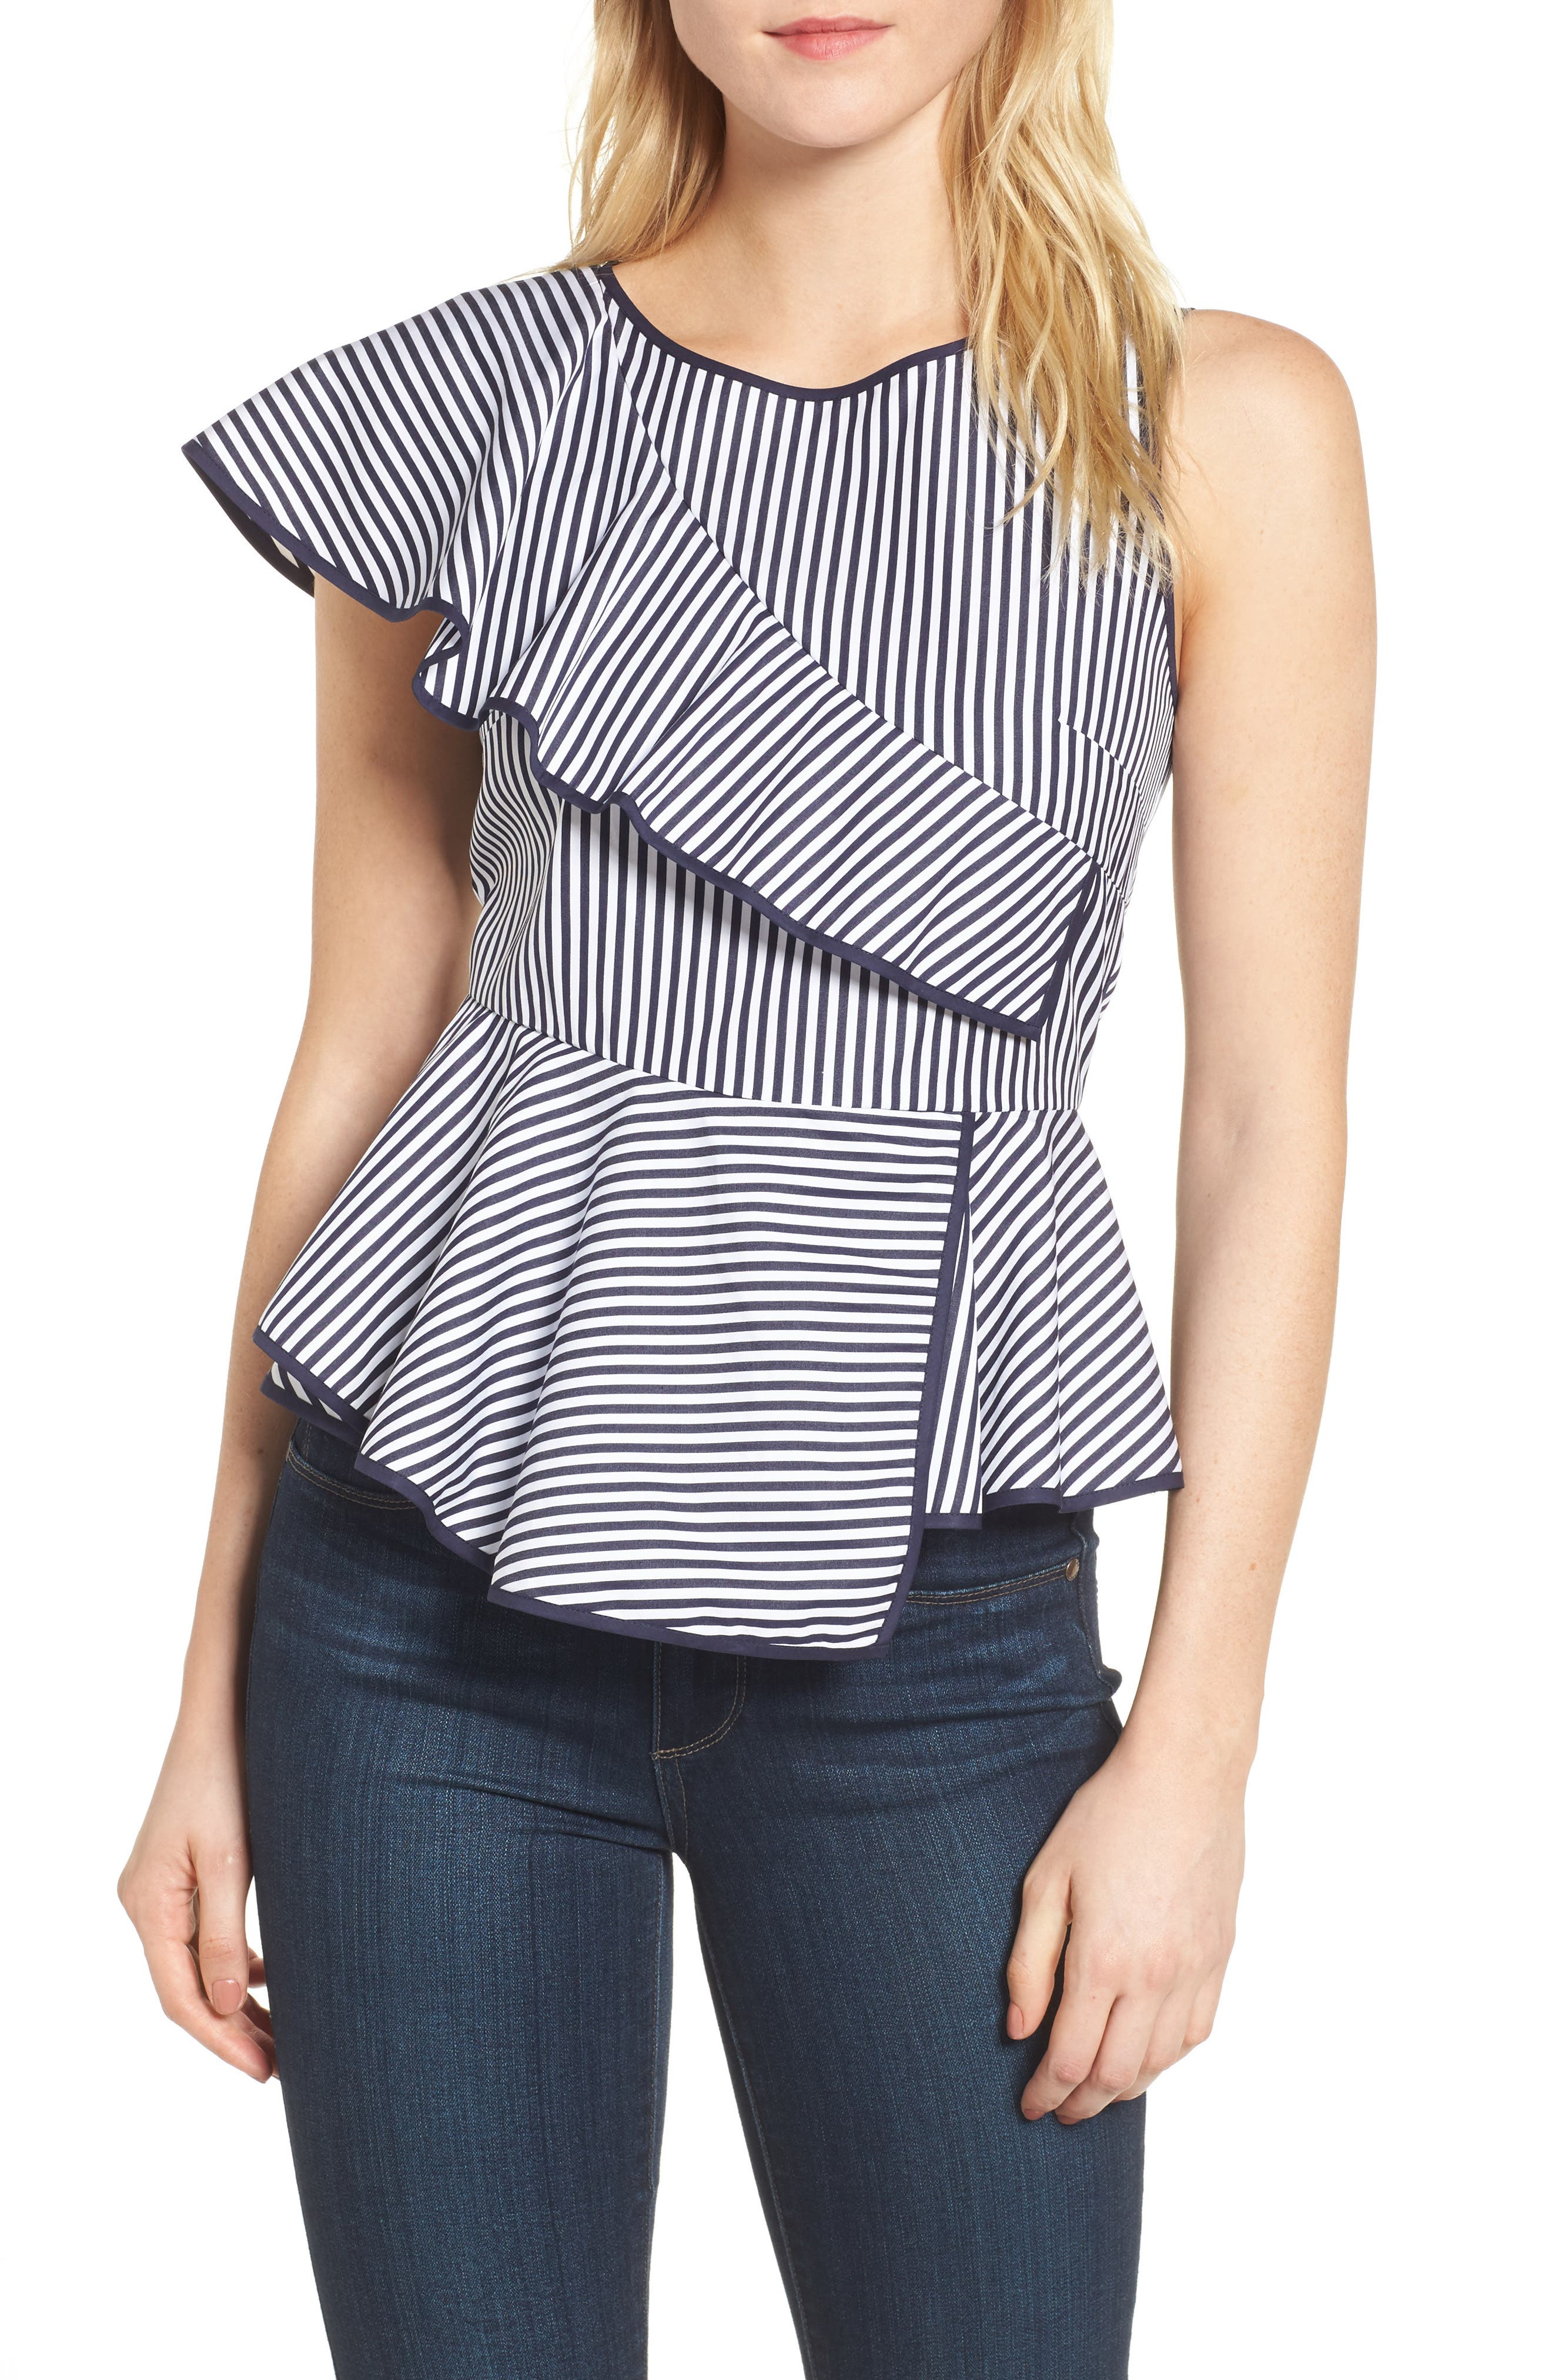 Carly Ruffle Top,                         Main,                         color, Navy/ White